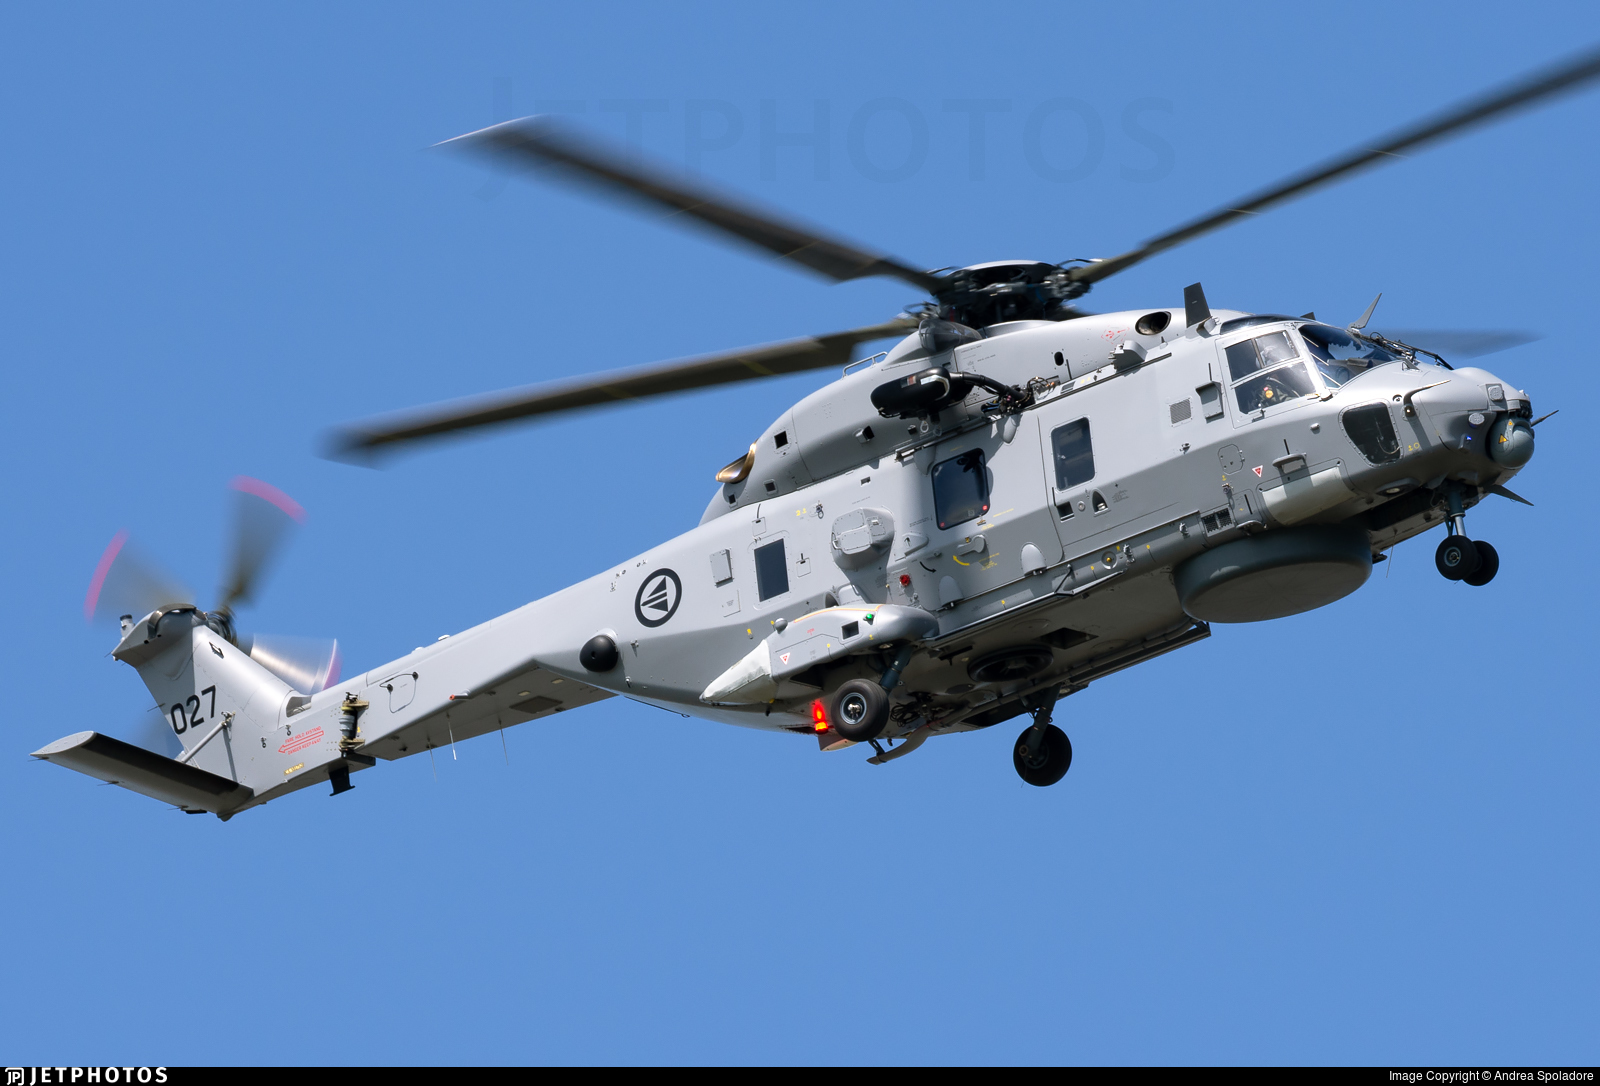 027 - NH Industries NH-90NFH - Norway - Air Force